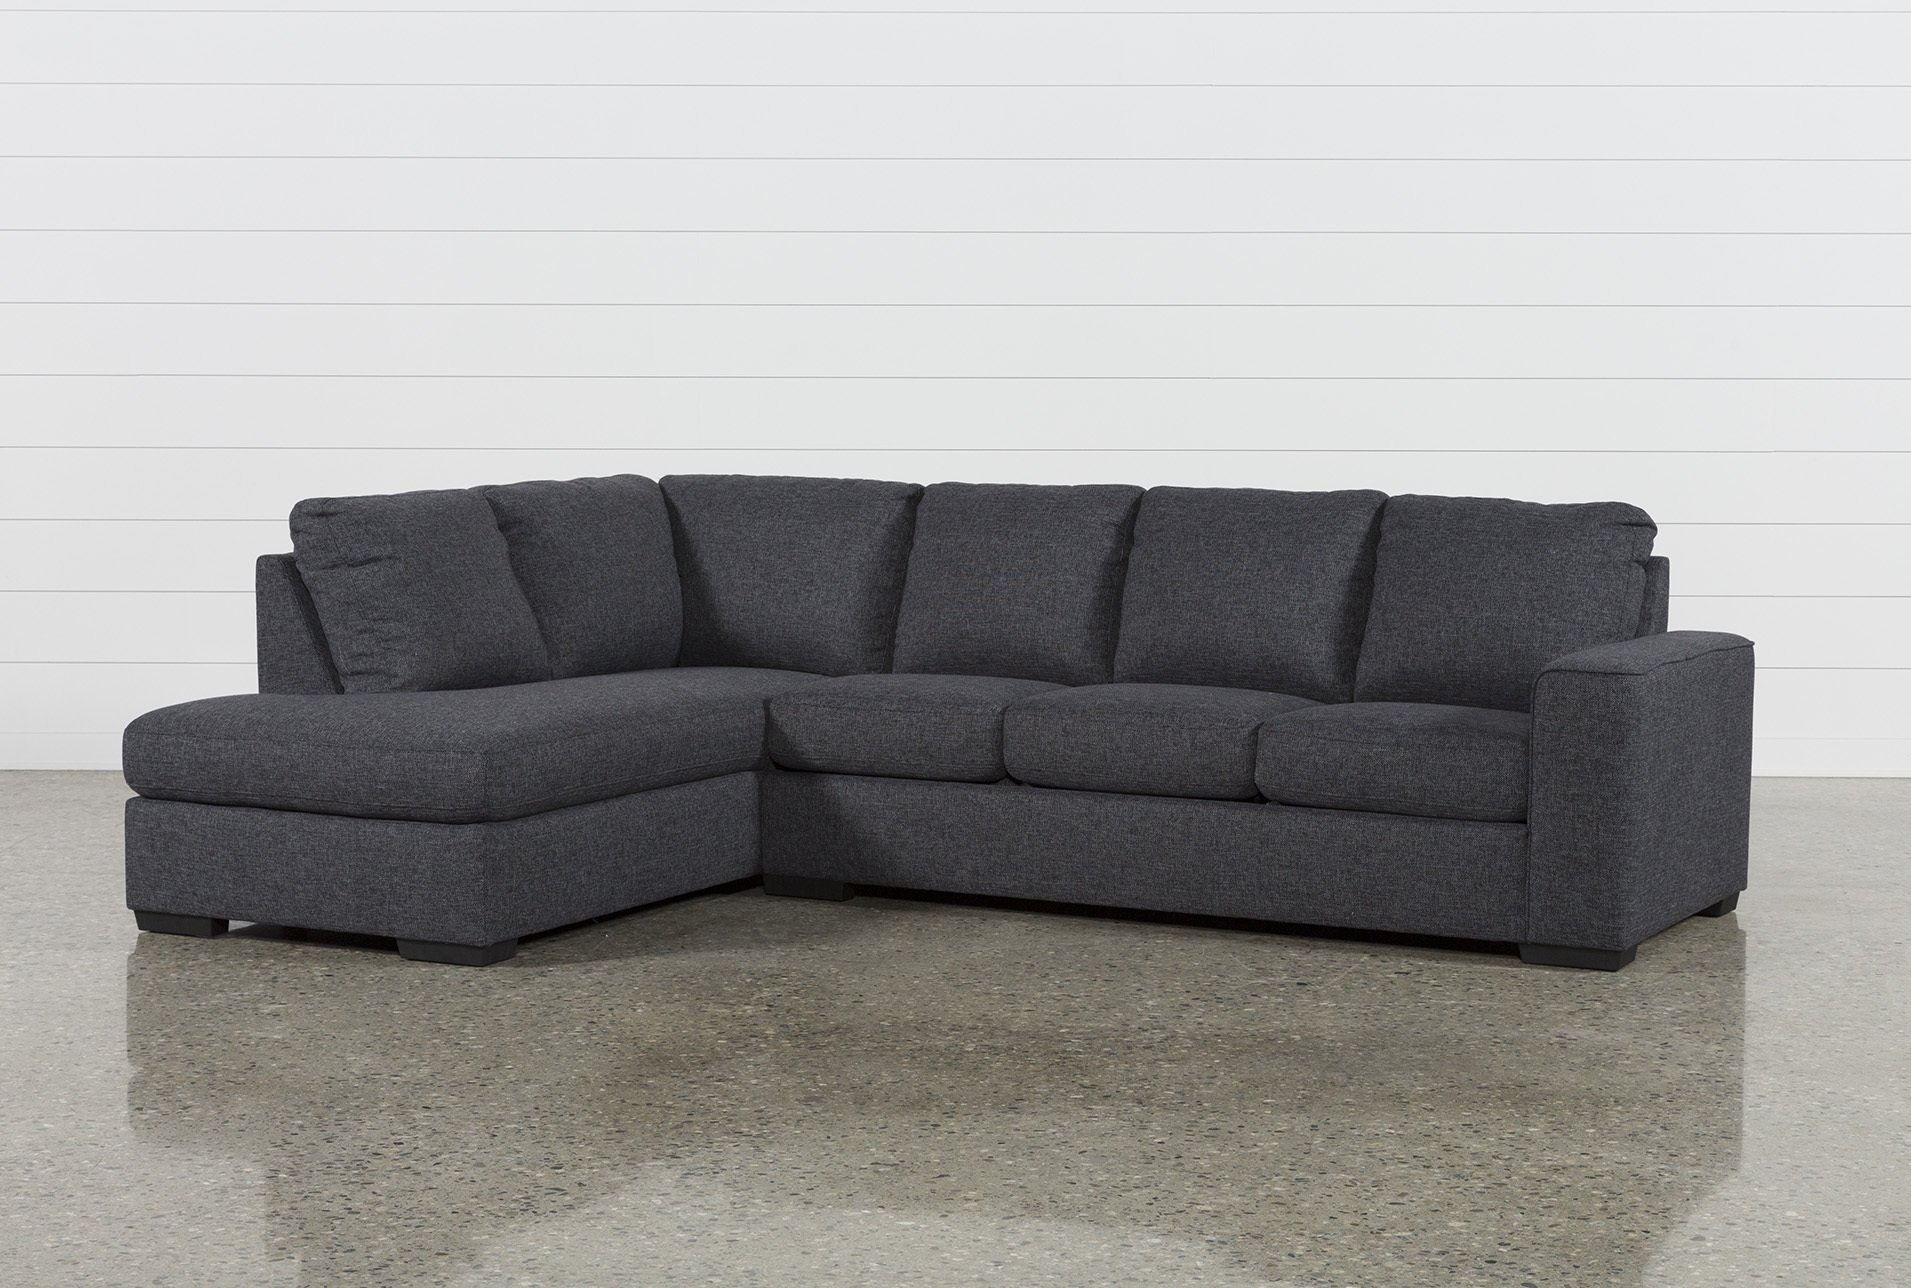 Lucy Dark Grey 2 Piece Sectional W/laf Chaise | Dark Grey And Products Regarding Aspen 2 Piece Sectionals With Raf Chaise (View 8 of 25)